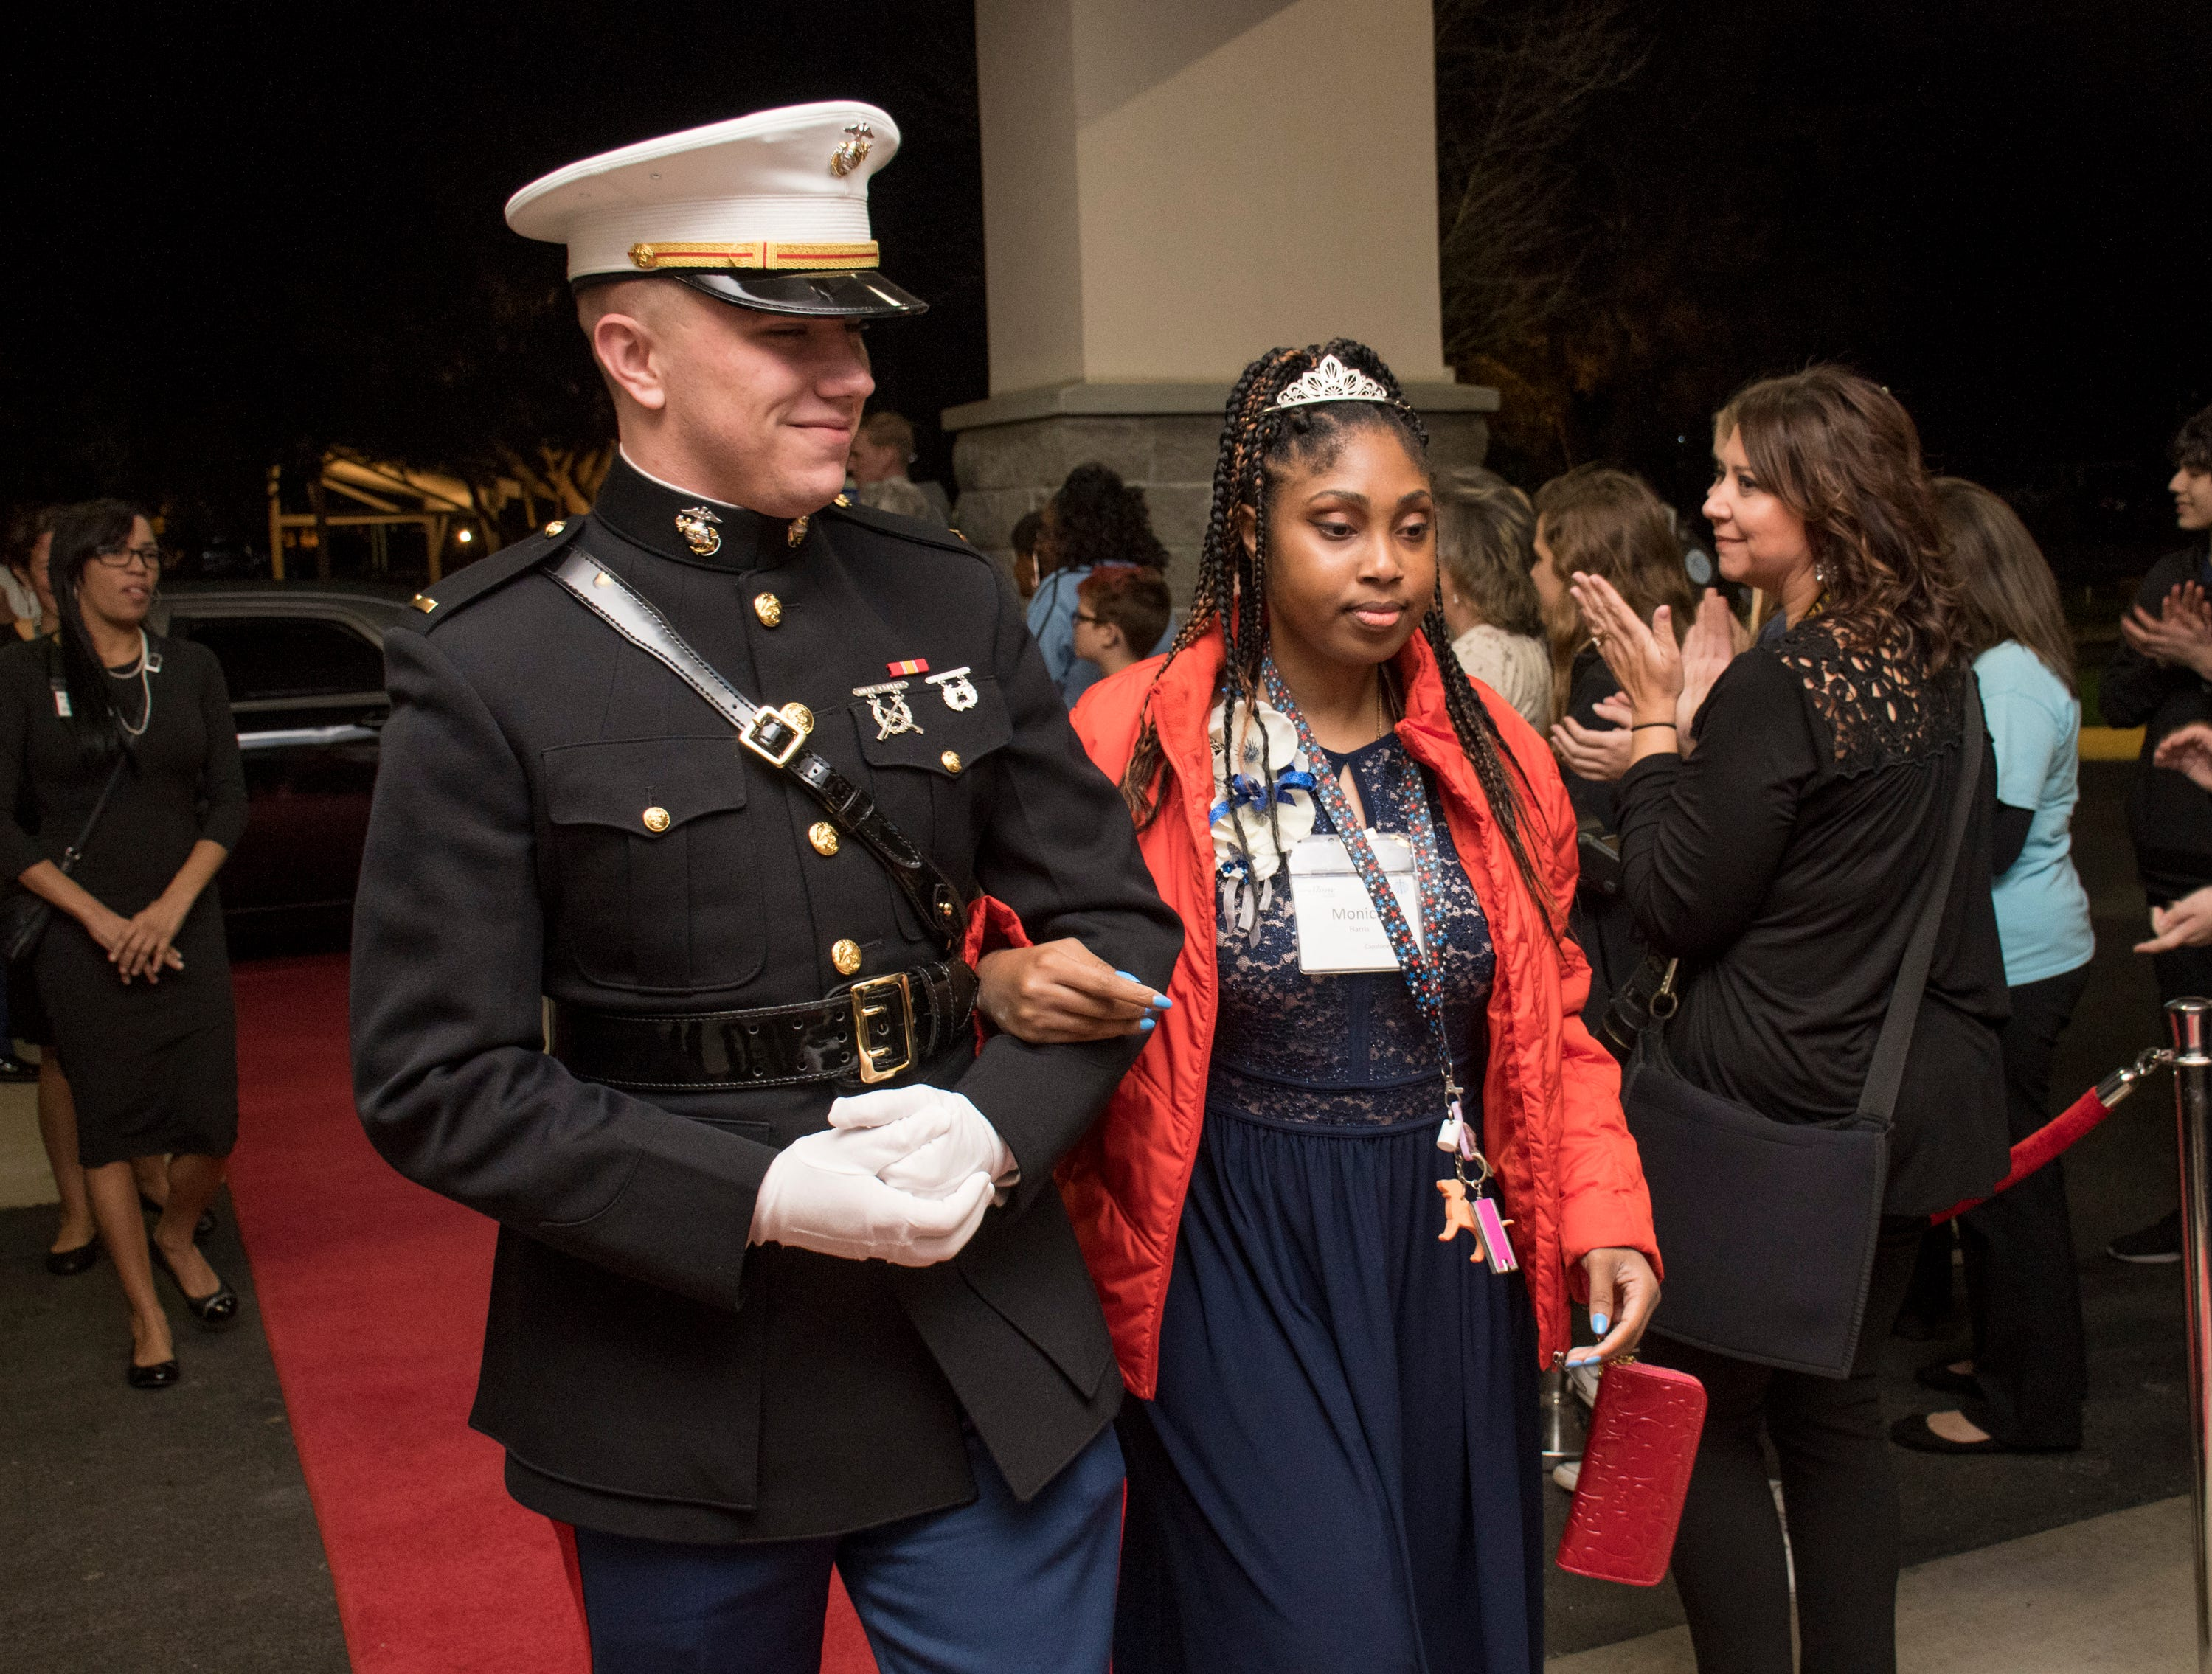 US Marine 2nd Lt. Nathan Sturgeon escorts Monica Harris into the Night to Shine prom for people with special needs sponsored by the Tim Tebow Foundation at Perdido Bay United Methodist Church in Pensacola on Friday, February 8, 2019.